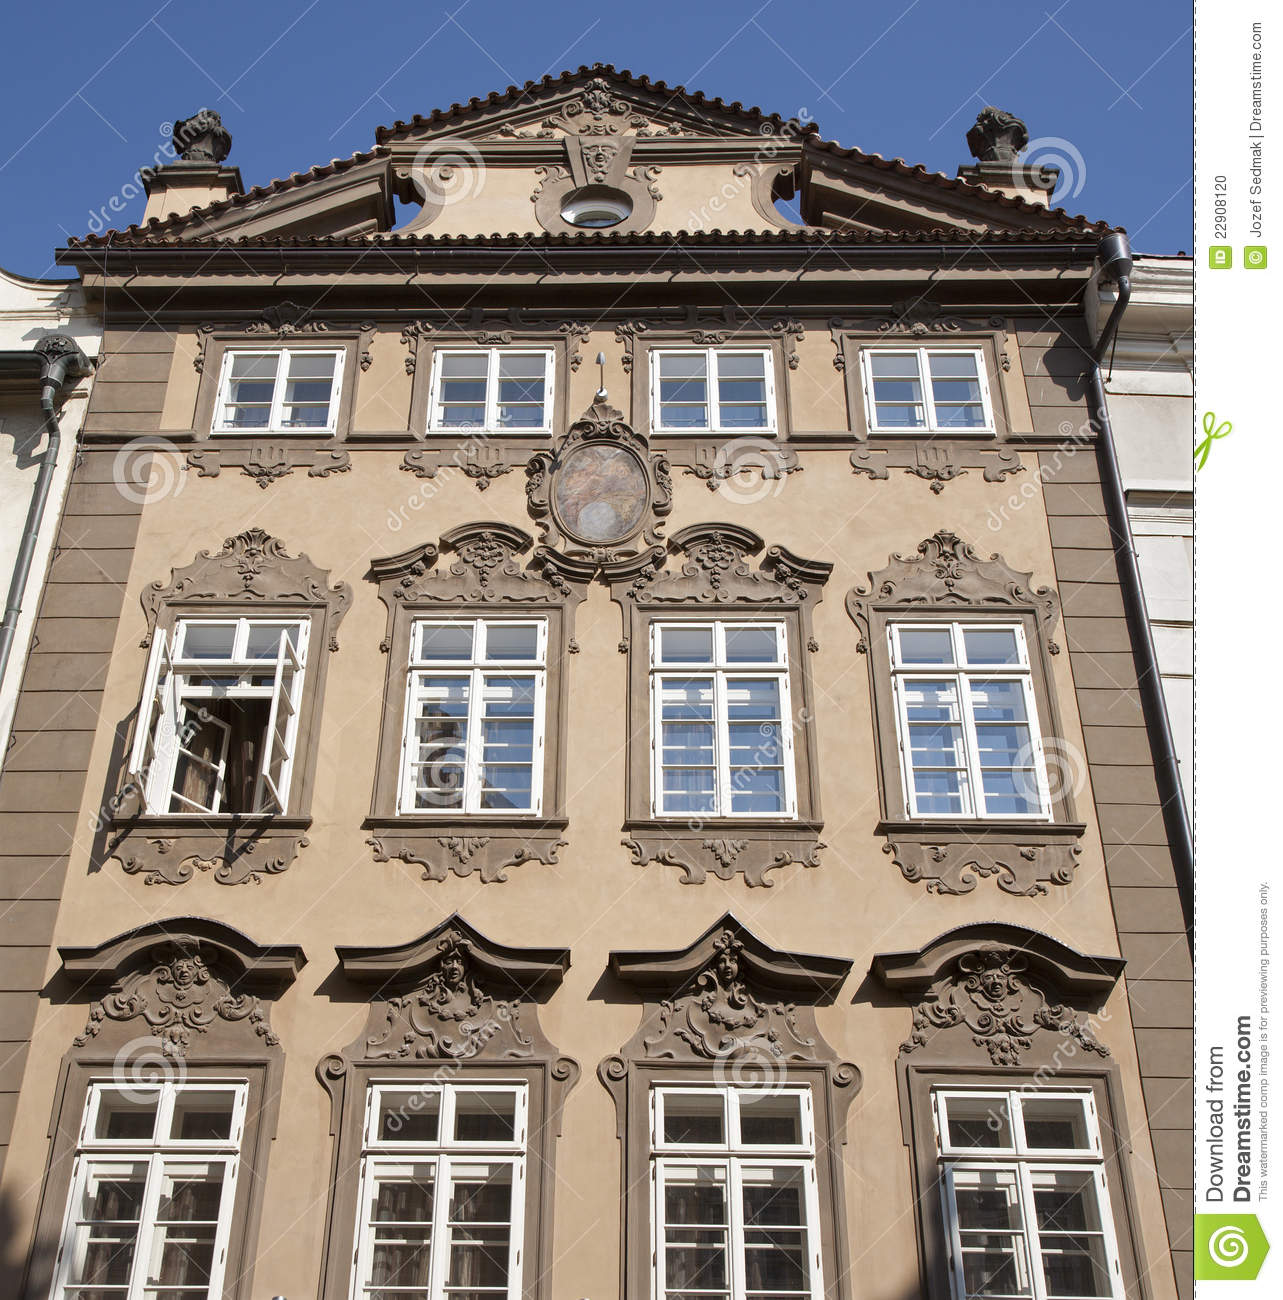 Prague fa ade de maison baroque photo stock image for Maison style baroque